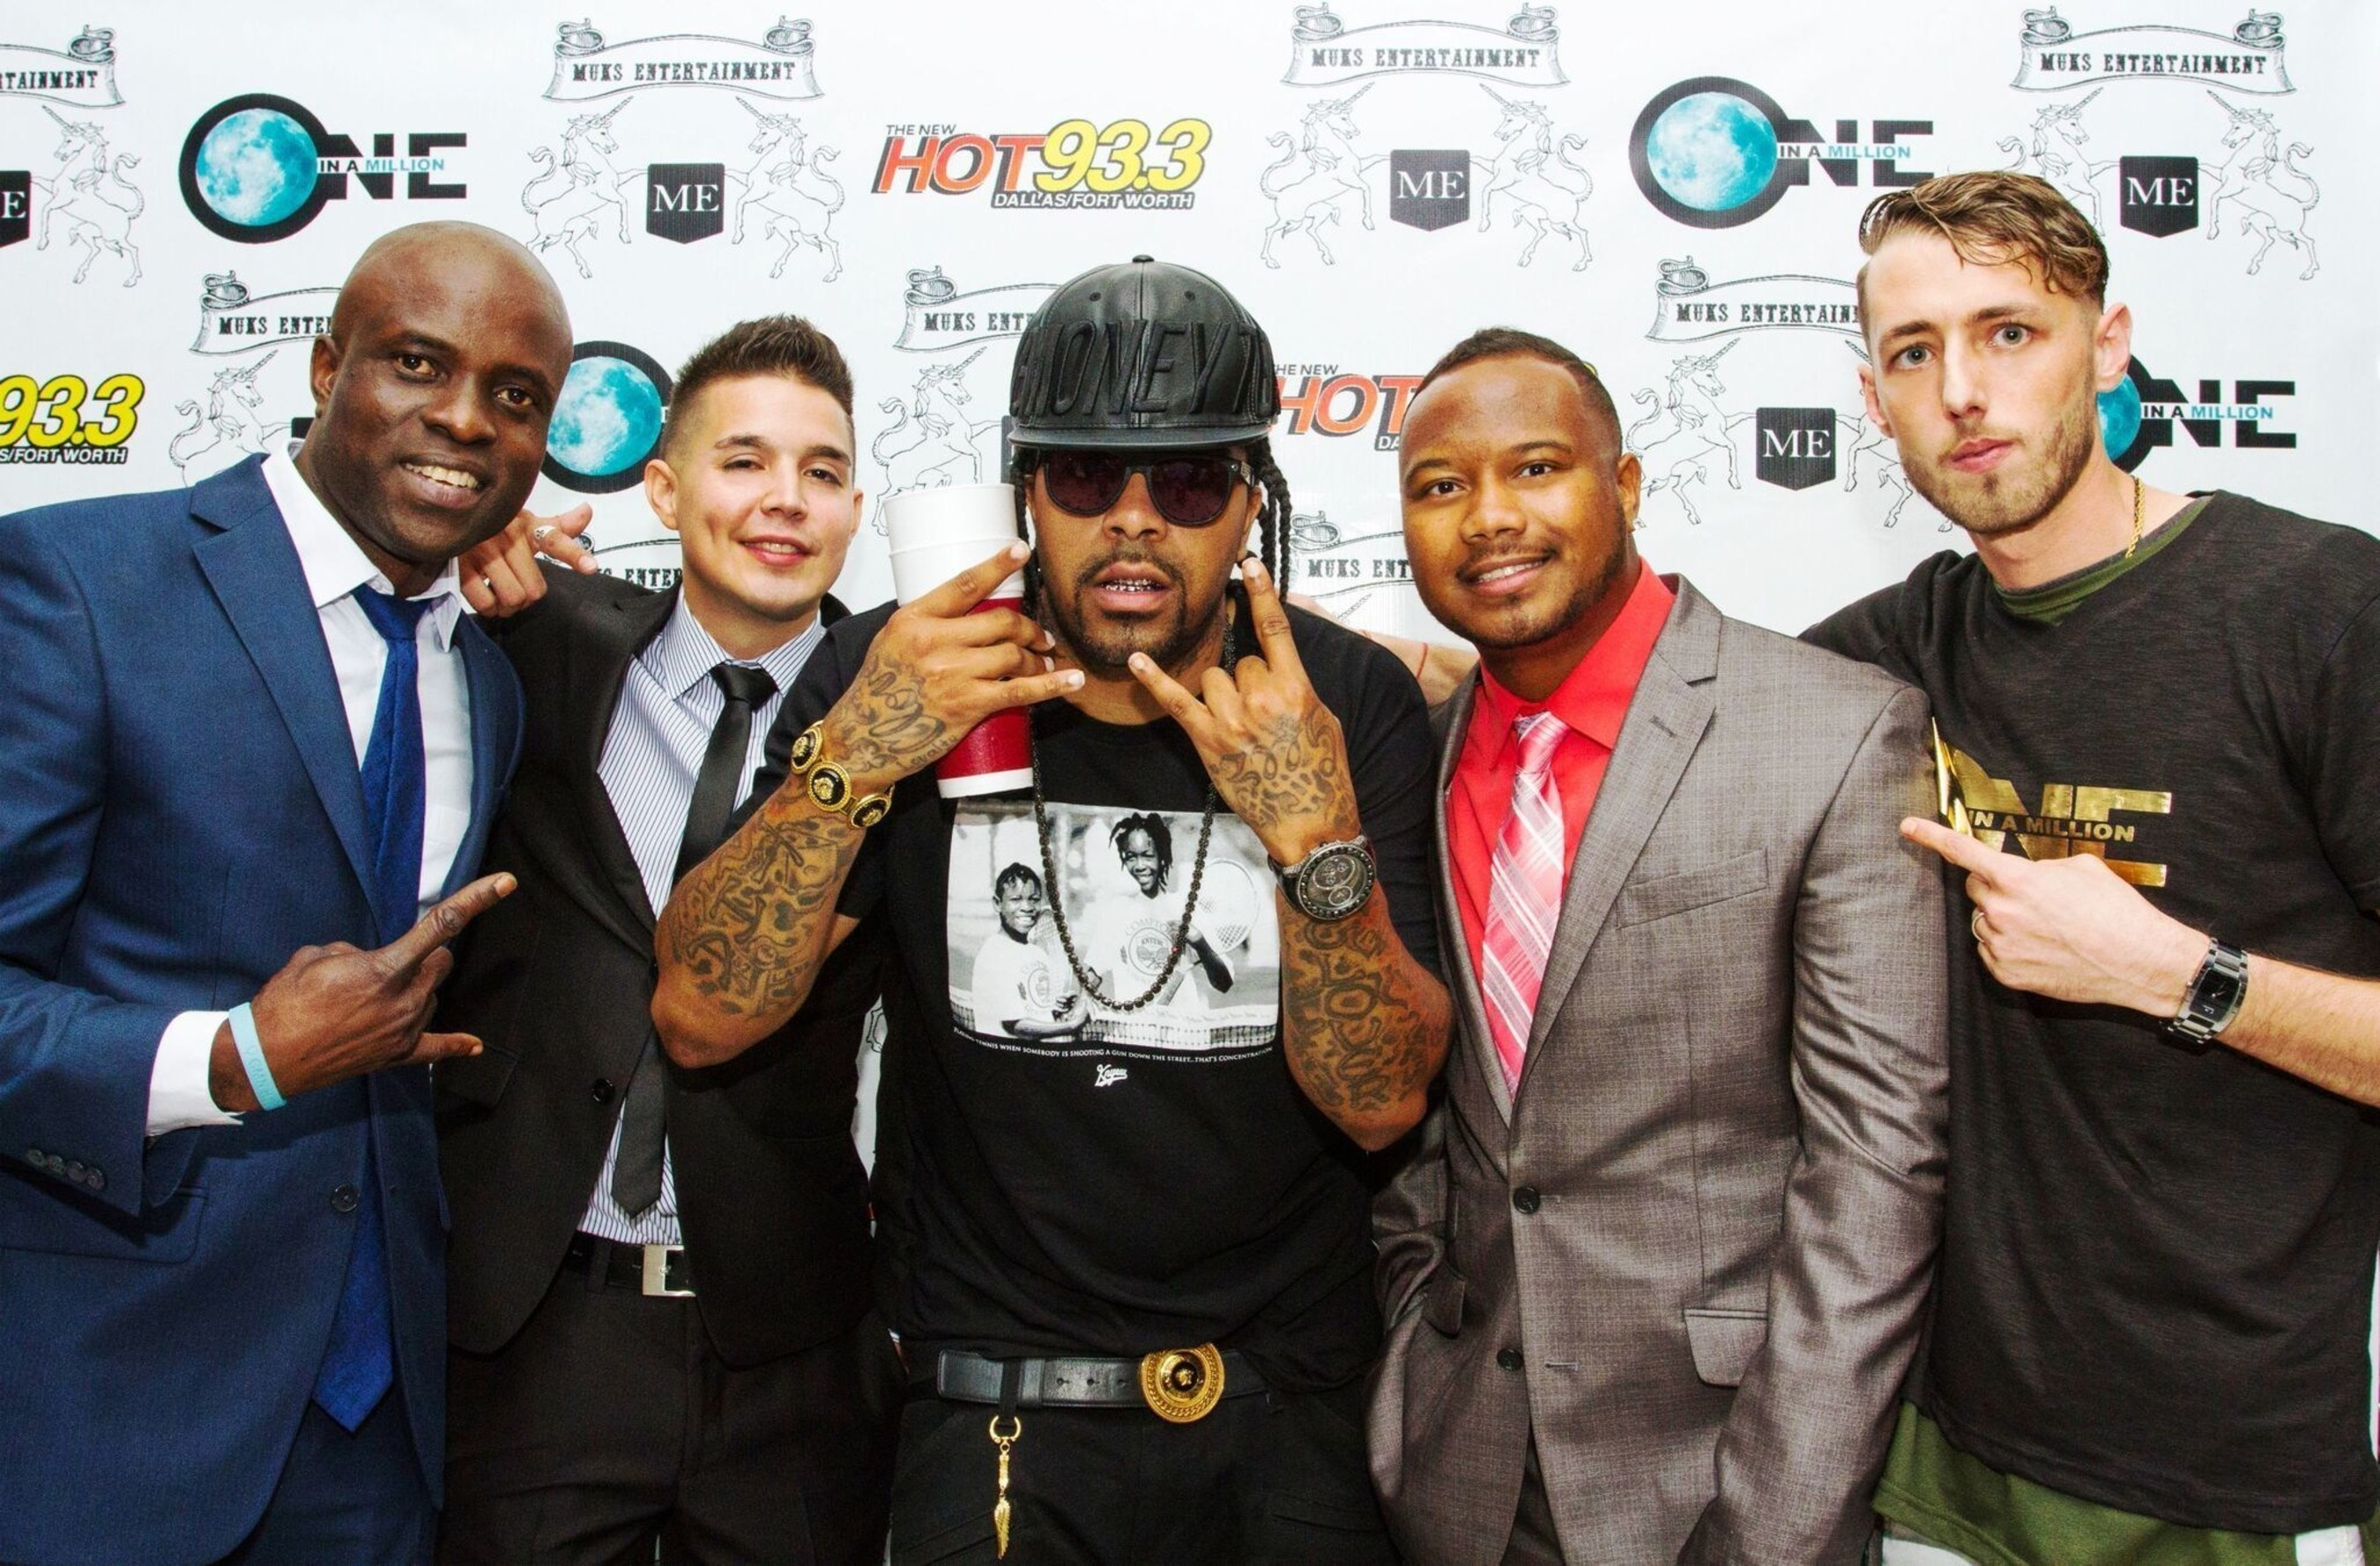 Muks Entertainment celebrates in style for 1 in a Million launch